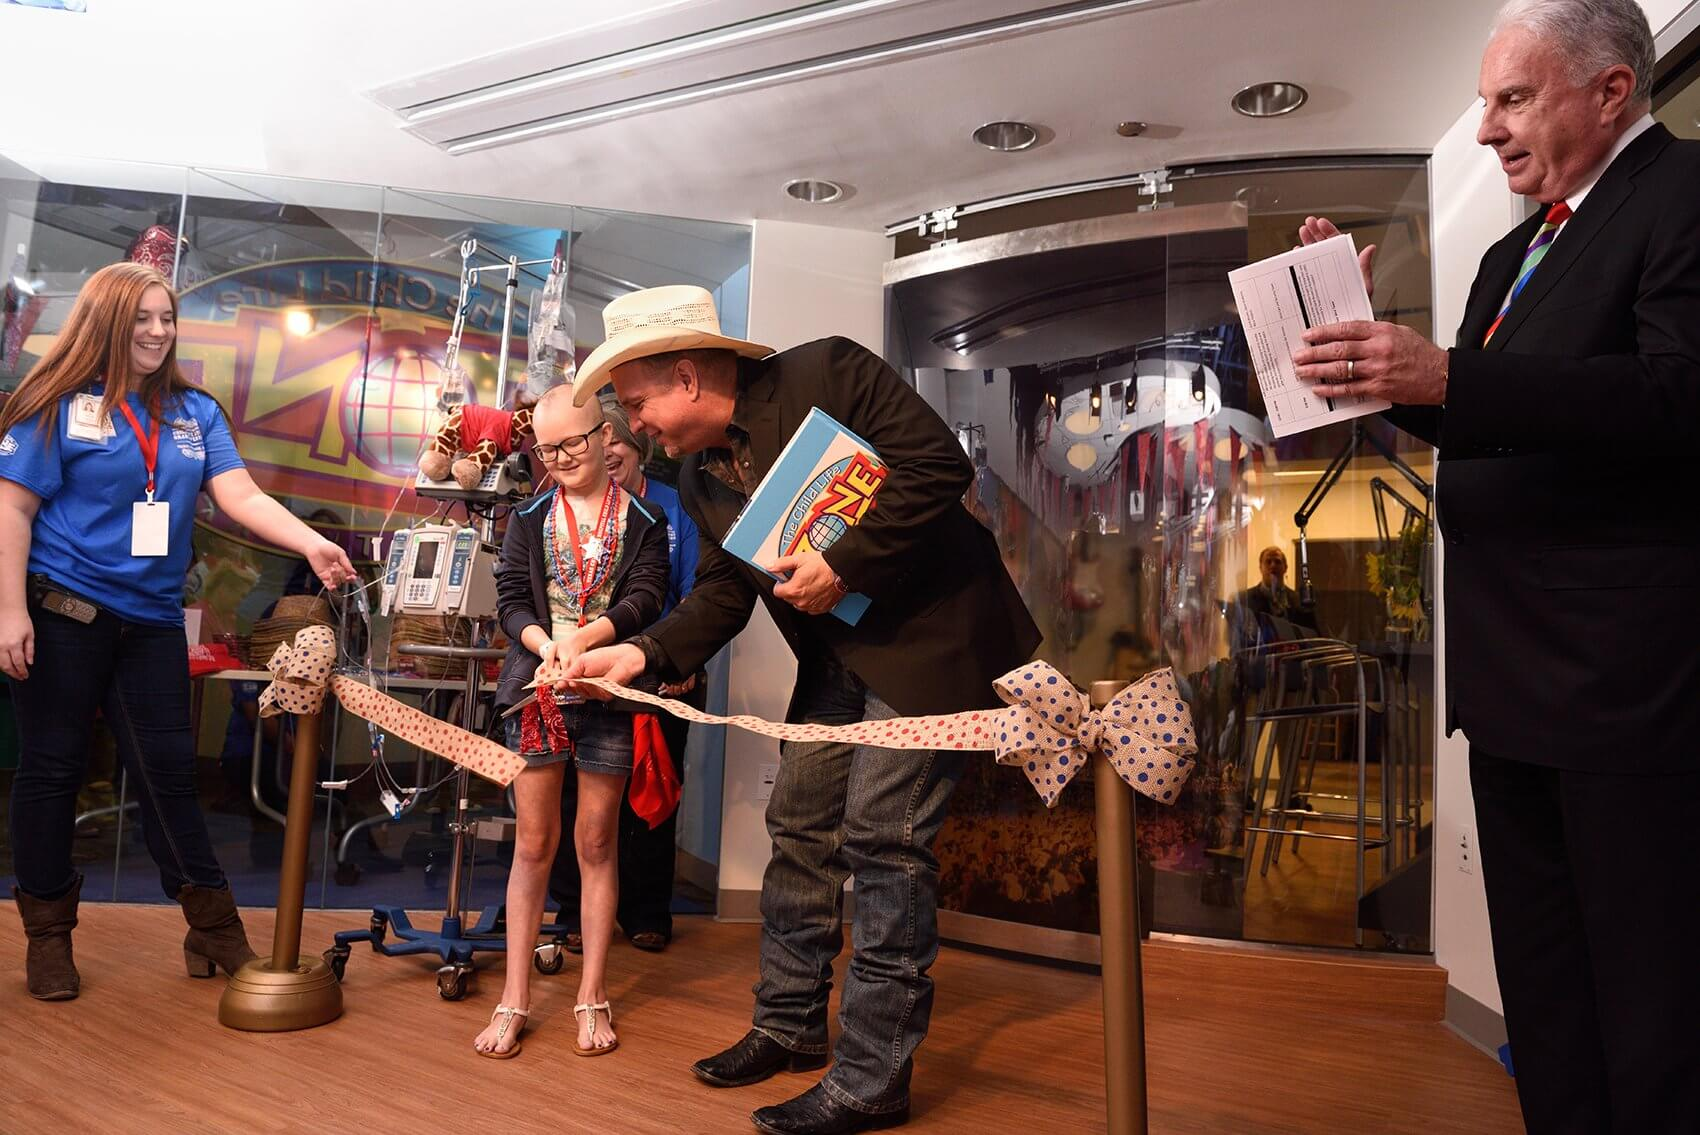 More than 100 patients and their families attended the grand opening of the newly renovated and expanded Child Life Zone at Texas Children's Hospital in Houston and were given the chance to meet Garth Brooks. (Credit: Paul Vincent Kuntz, Texas Children's Hospital)